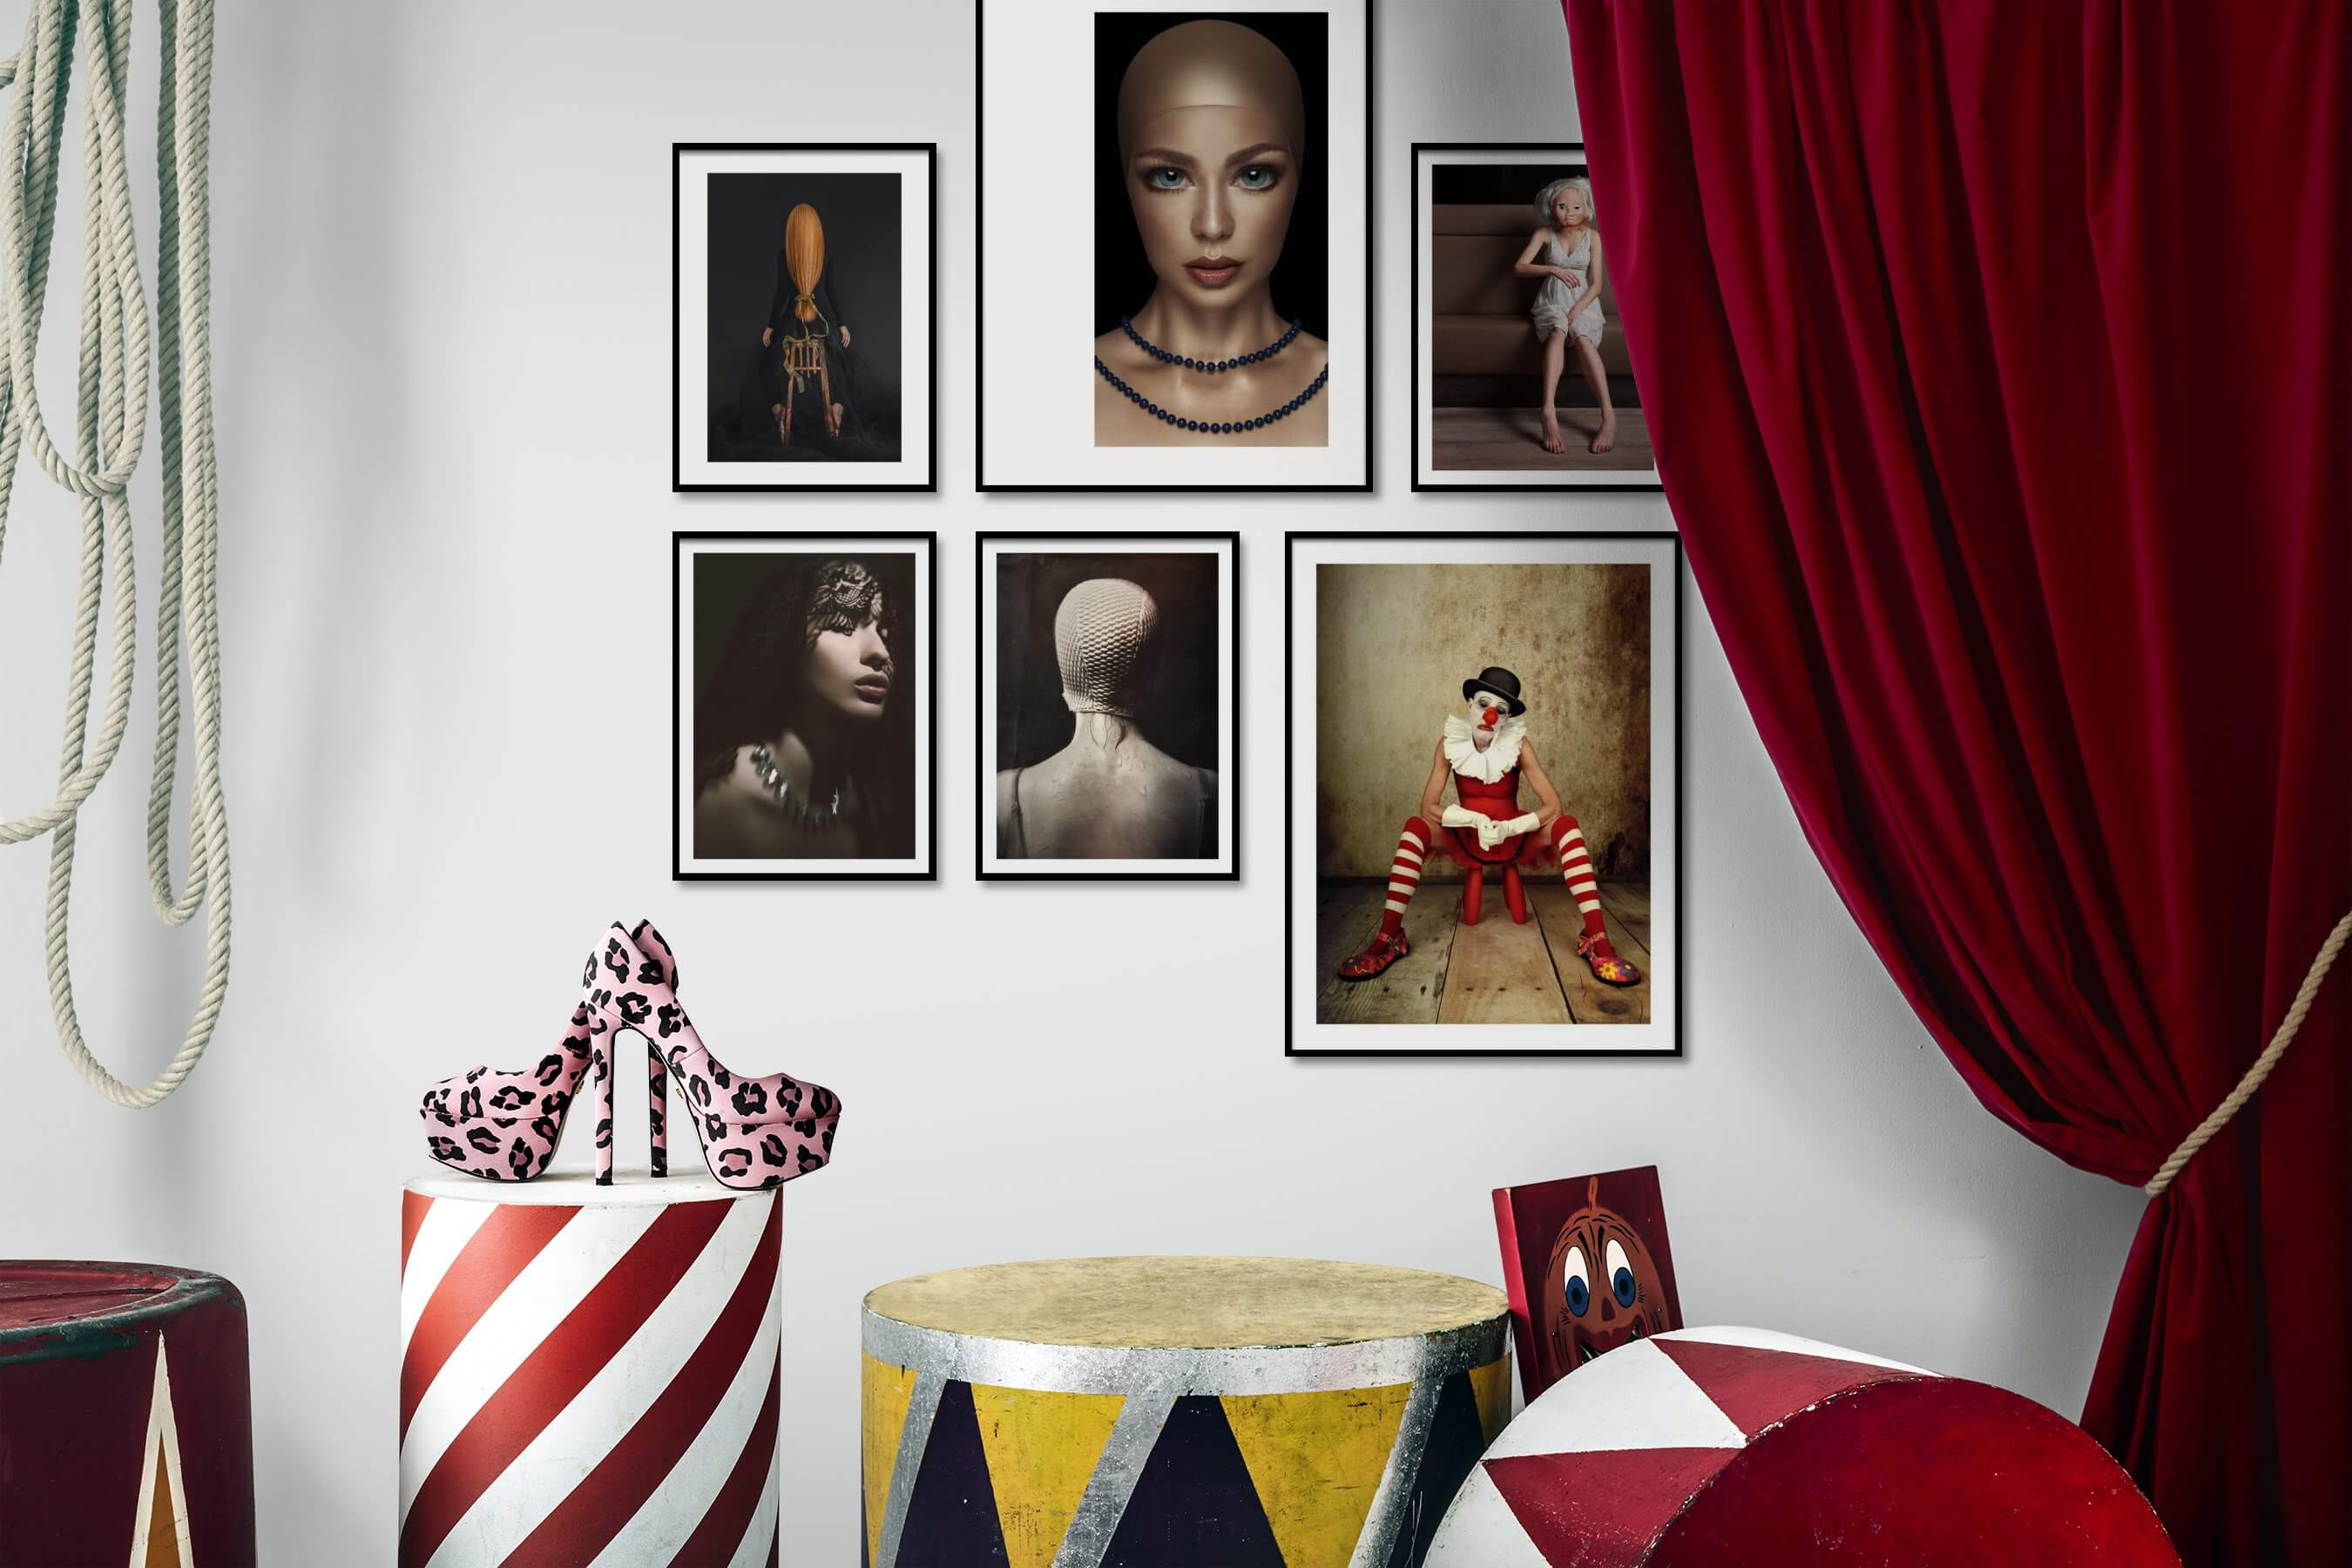 Gallery wall idea with six framed pictures arranged on a wall depicting Artsy, For the Minimalist, Fashion & Beauty, Dark Tones, and Vintage